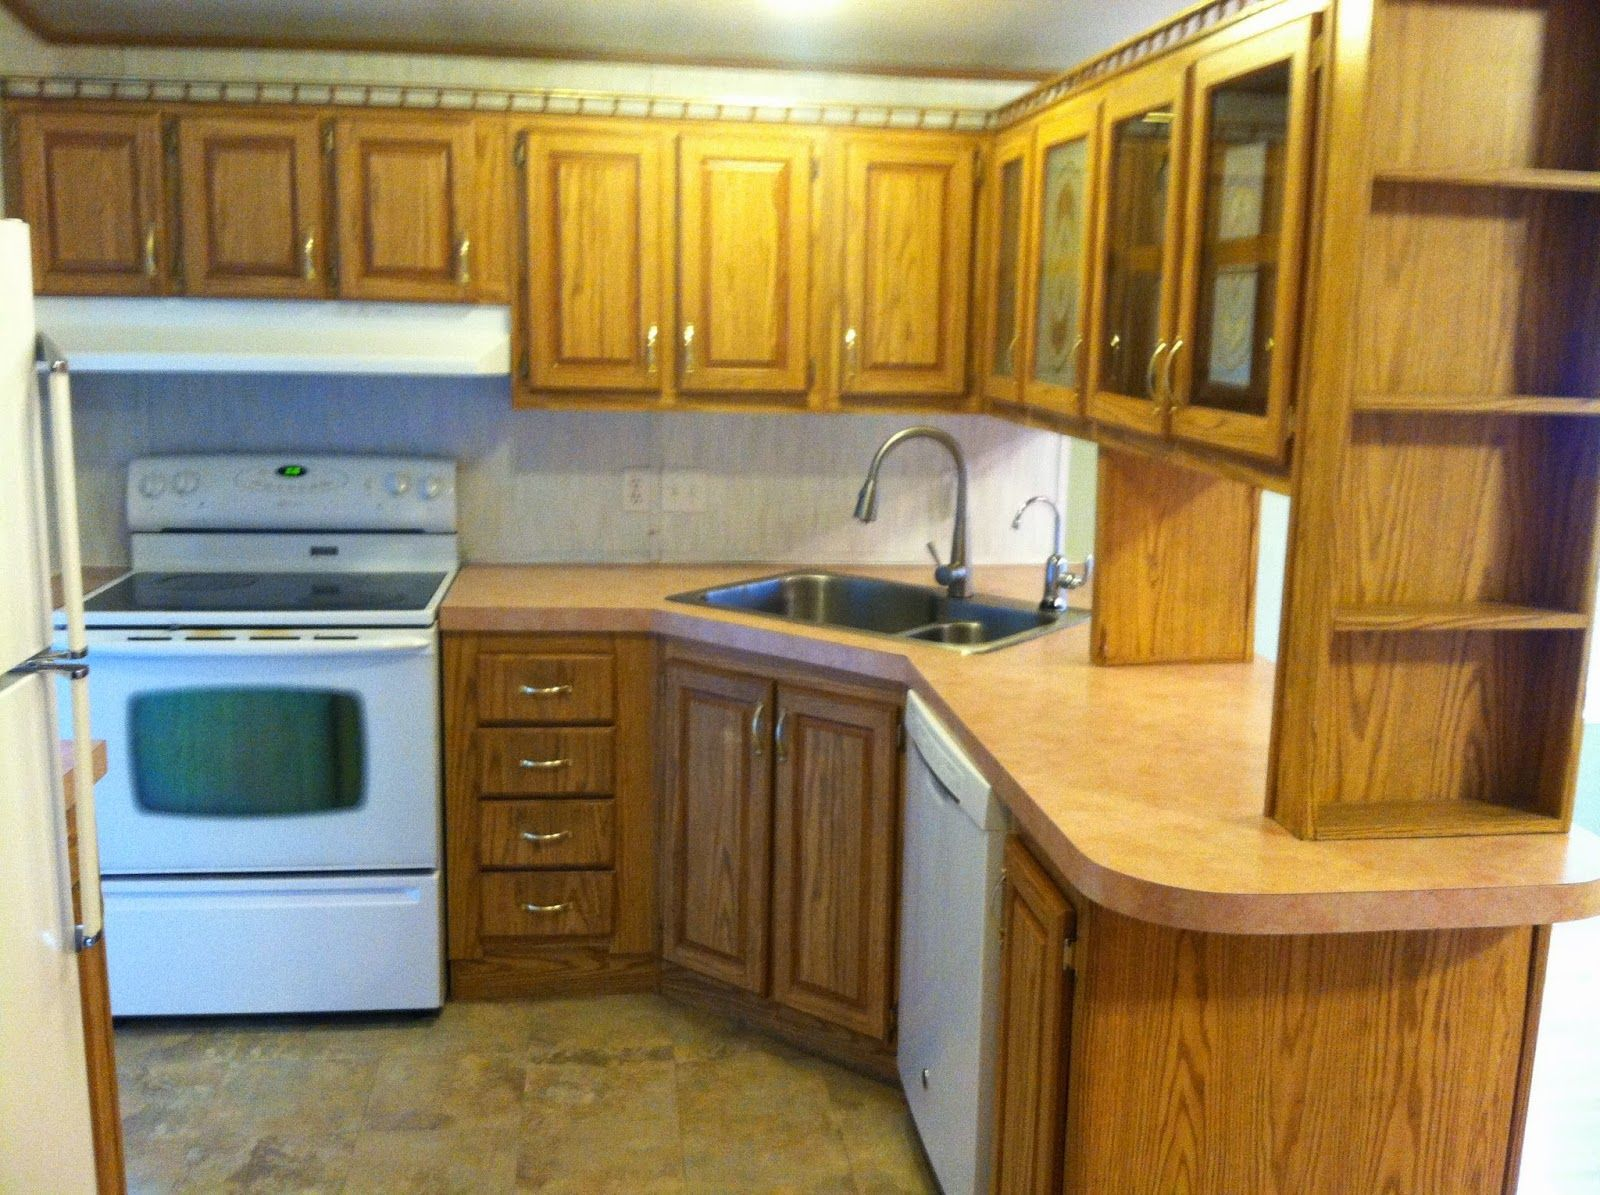 Roughly kitchen makeover mobile home painting fake wood